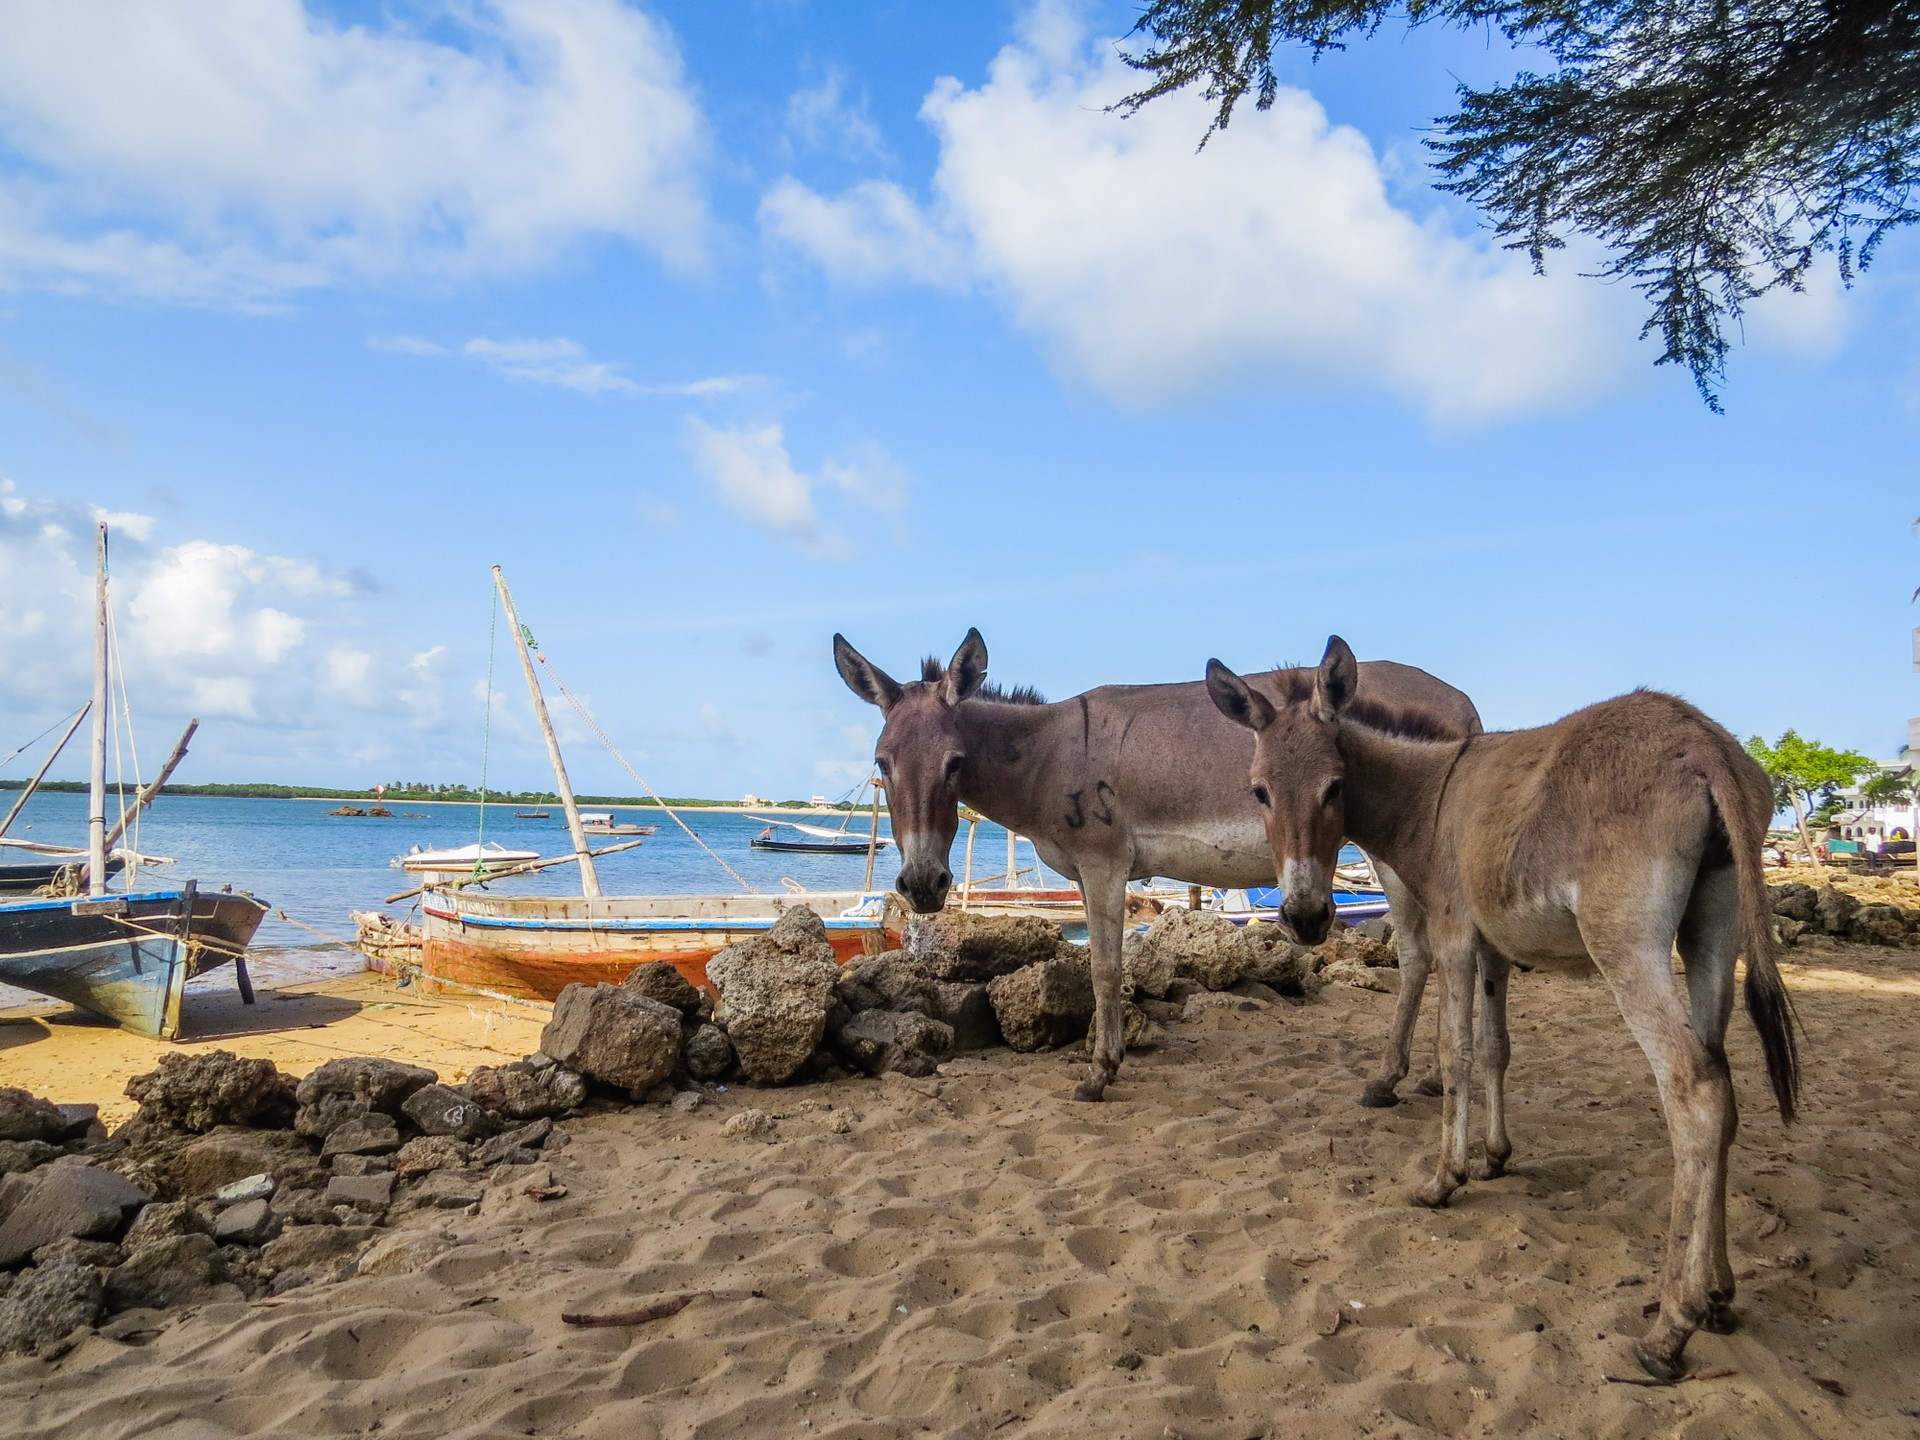 Donkeys on Lamu Beach, Kenya